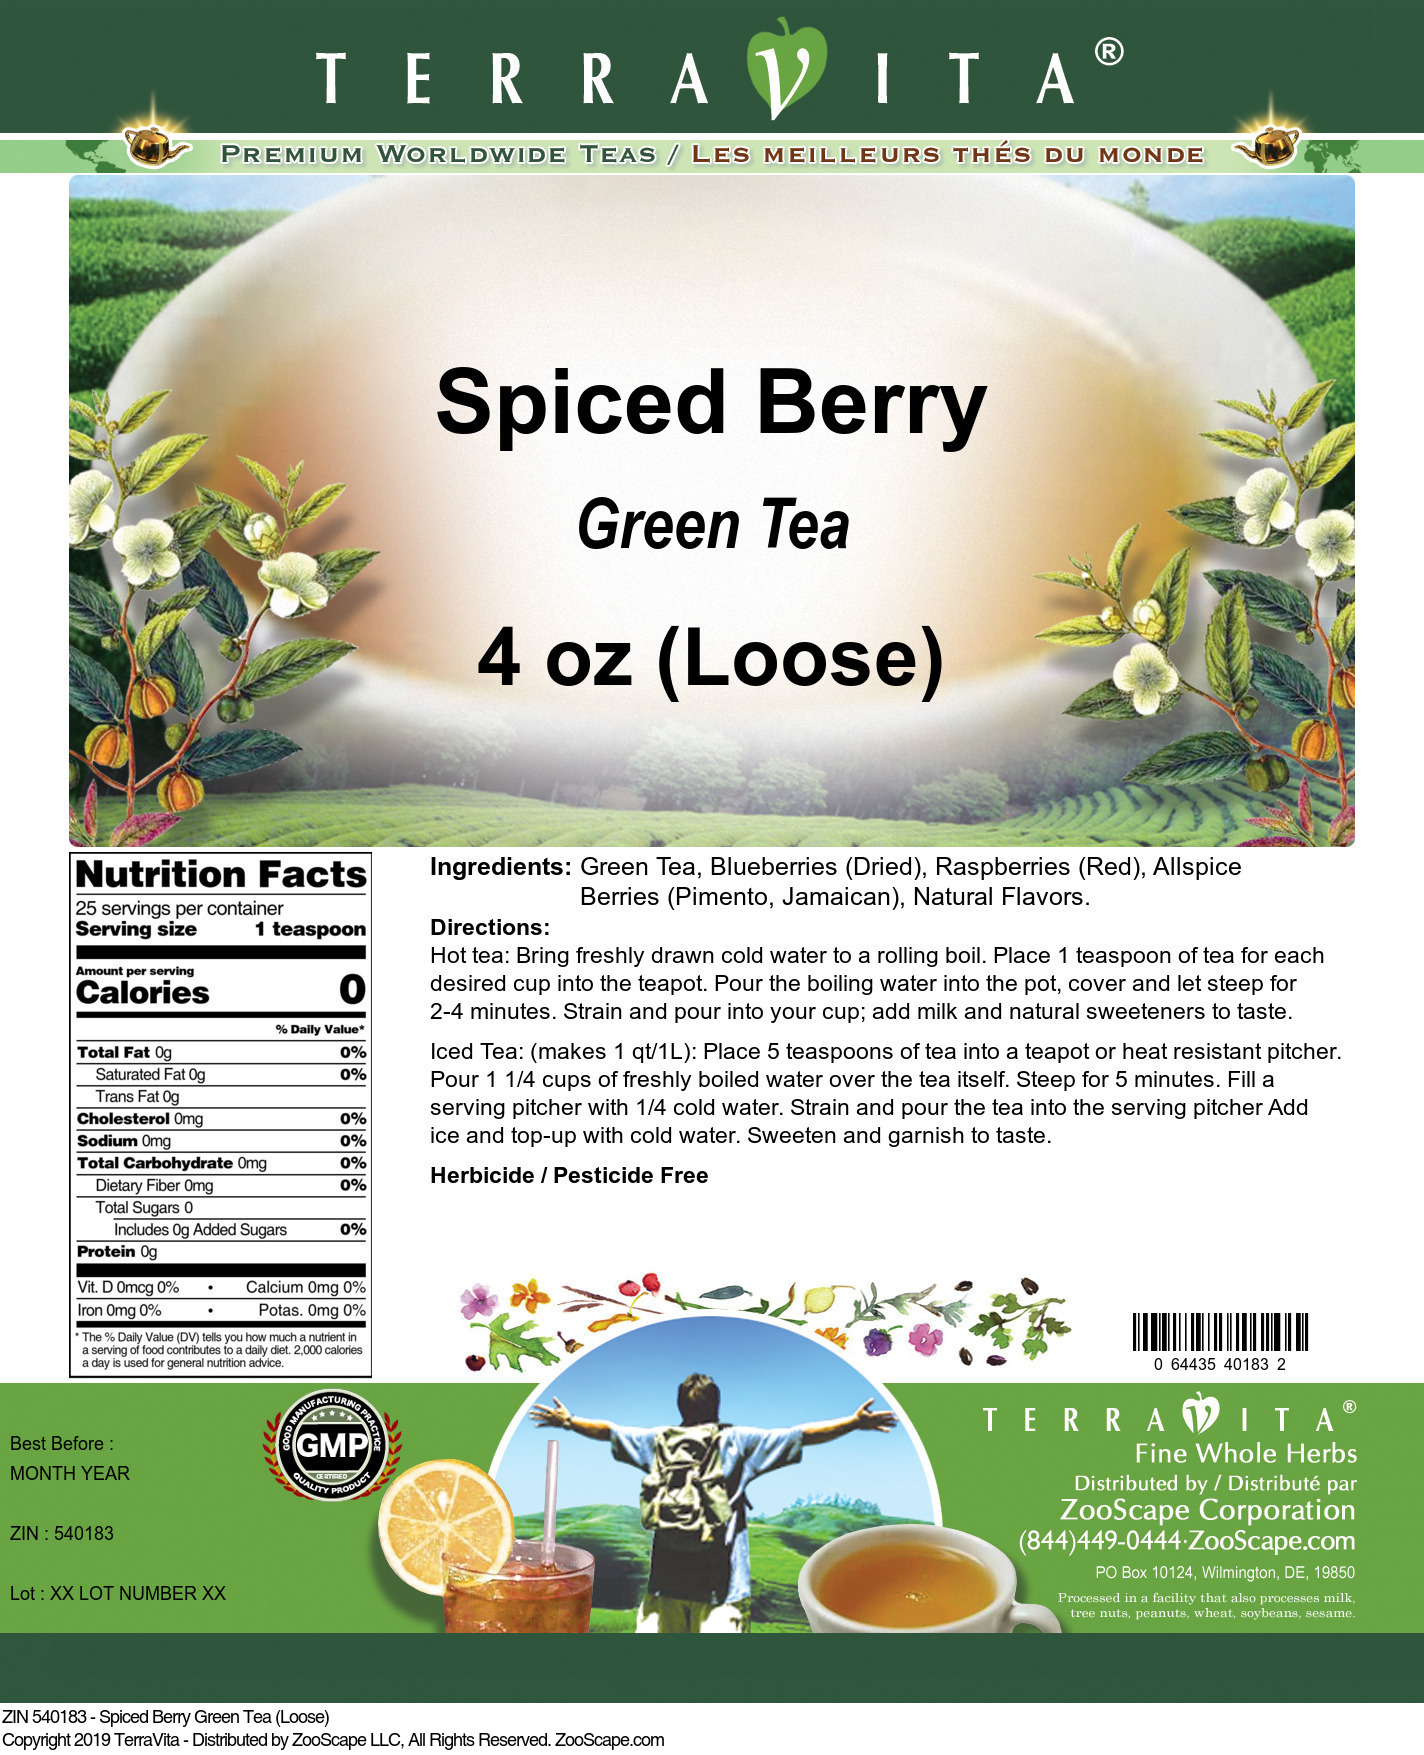 Spiced Berry Green Tea (Loose)